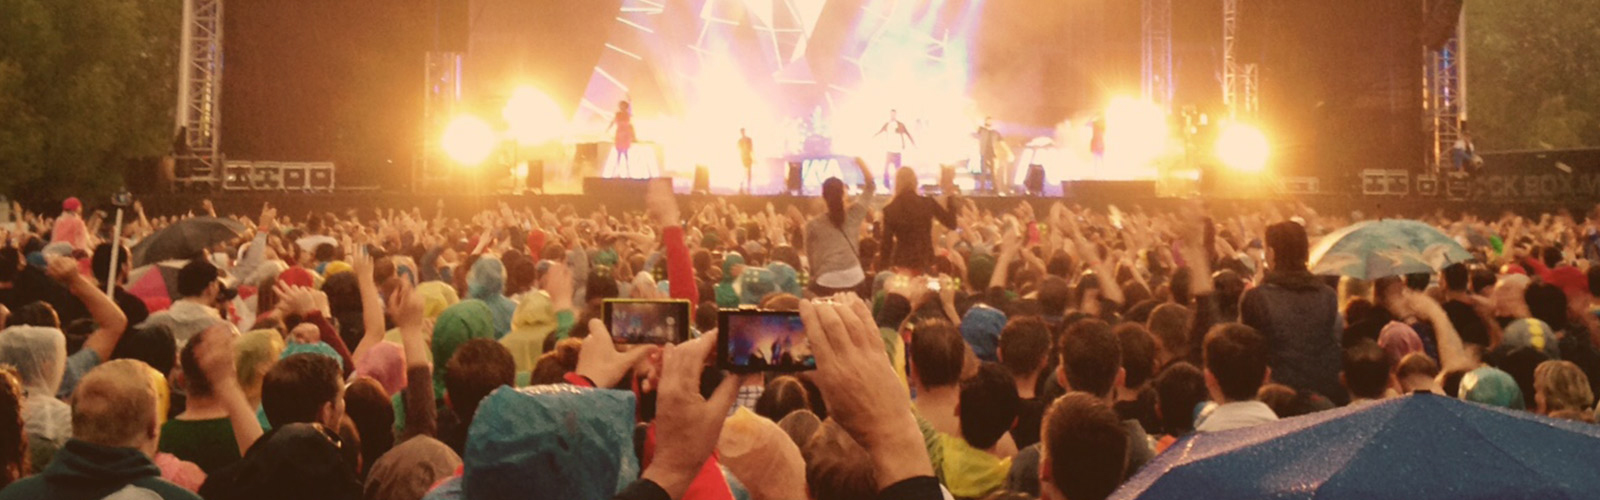 Setting a strategy for playing showcase festivals